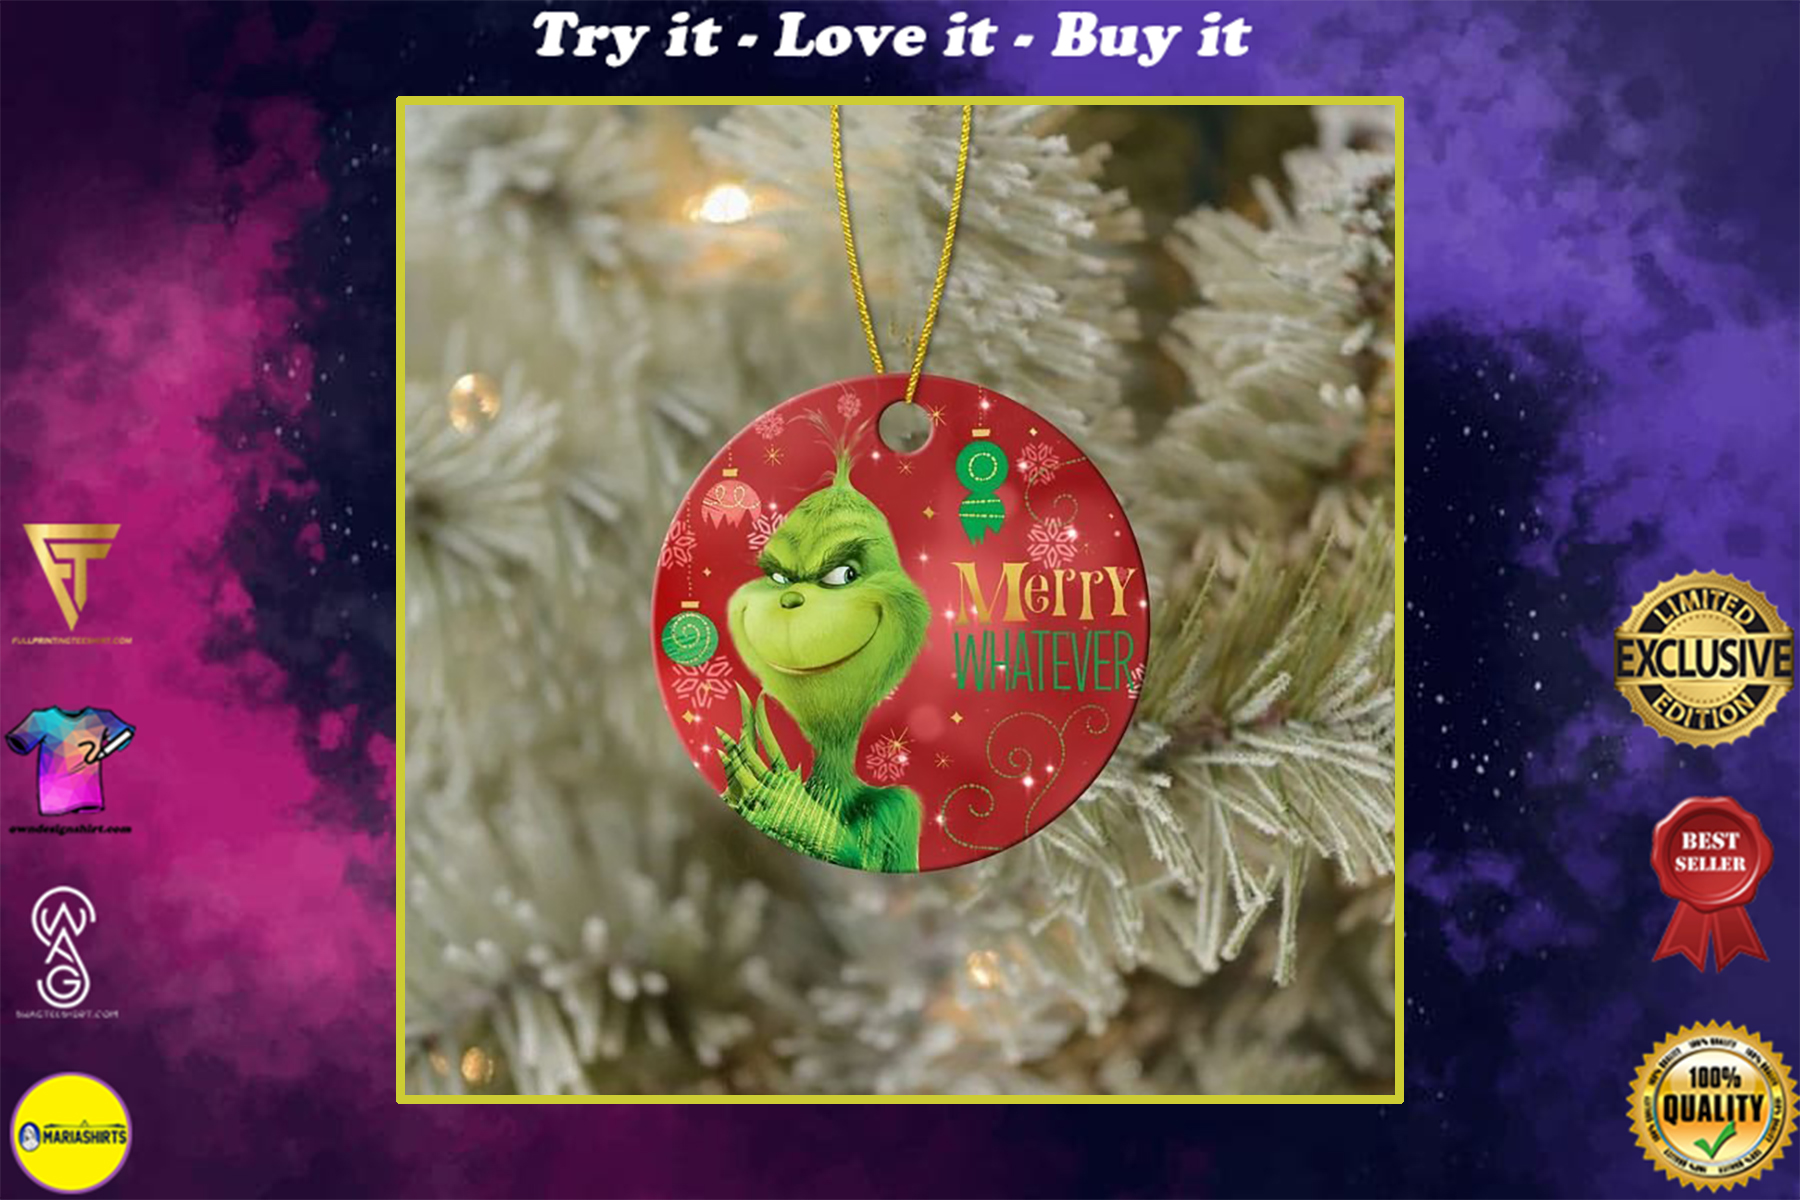 the grinch merry whatever christmas ornament